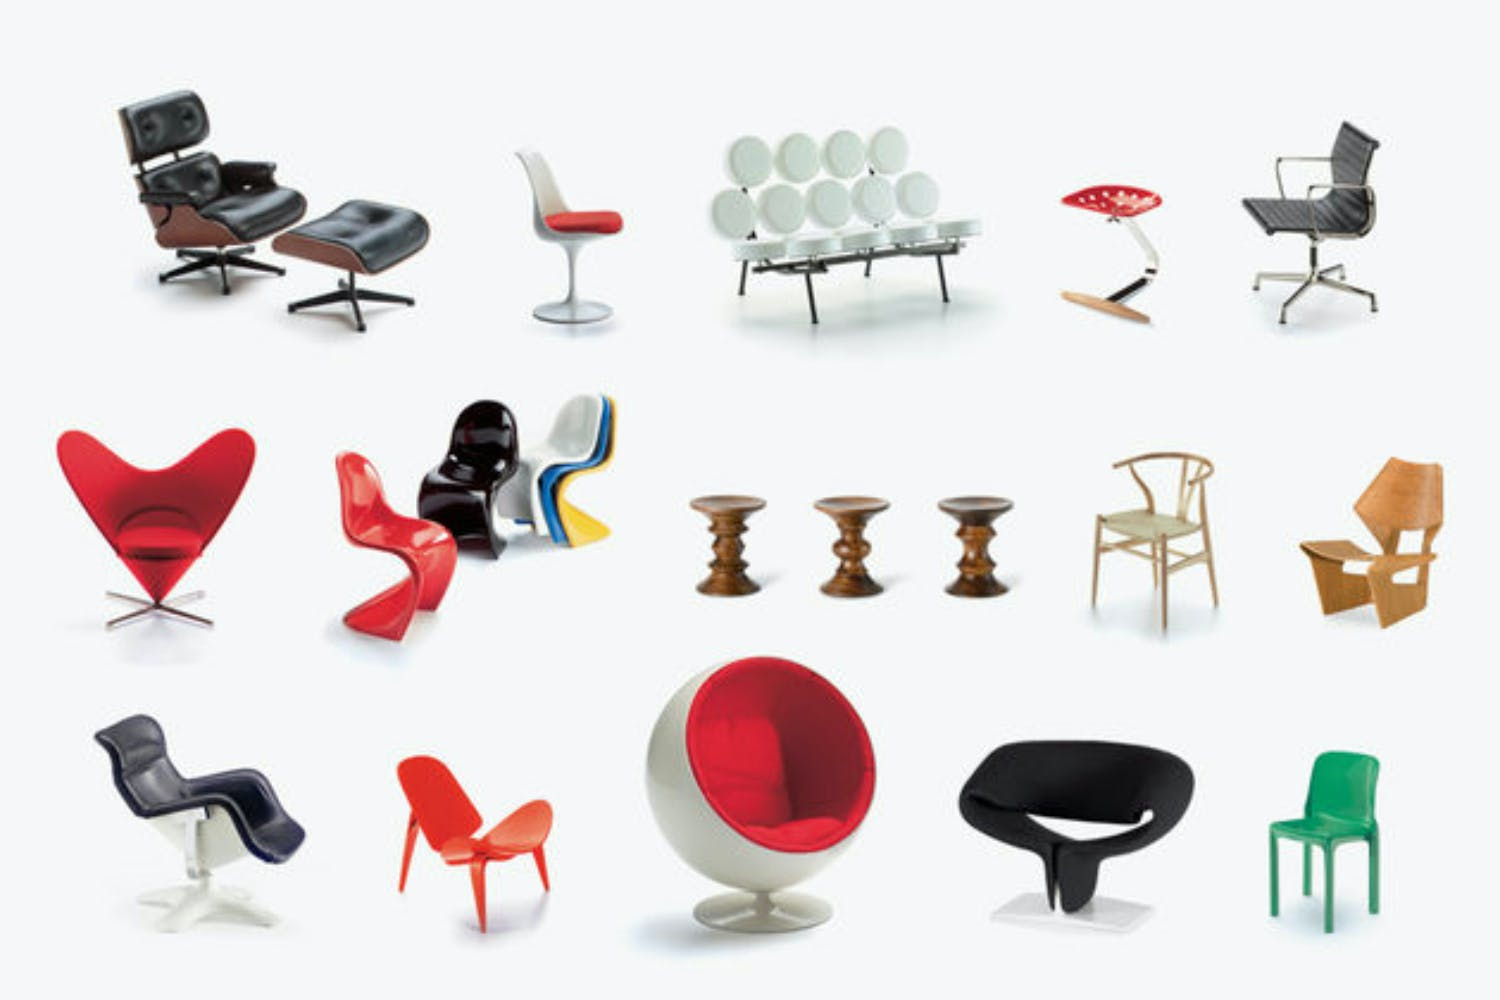 miniatures collection 2 by vitra design museum for vitra. Black Bedroom Furniture Sets. Home Design Ideas